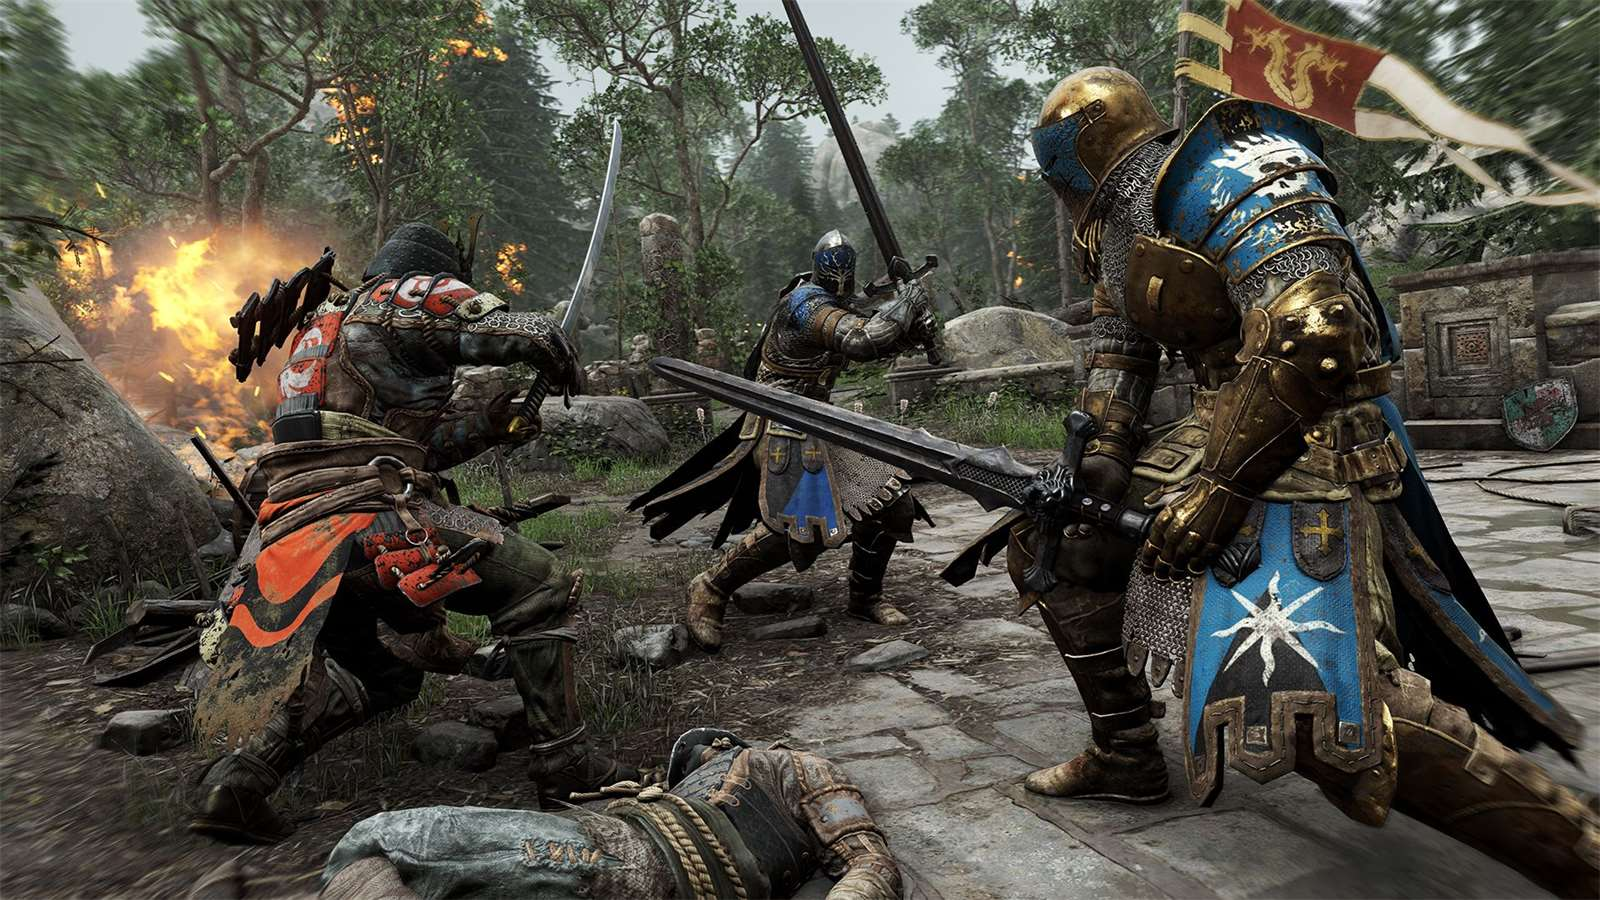 Galerie - Ubisoft oznamuje For Honor pro PS4, Xbox One a PC – Doupě.cz